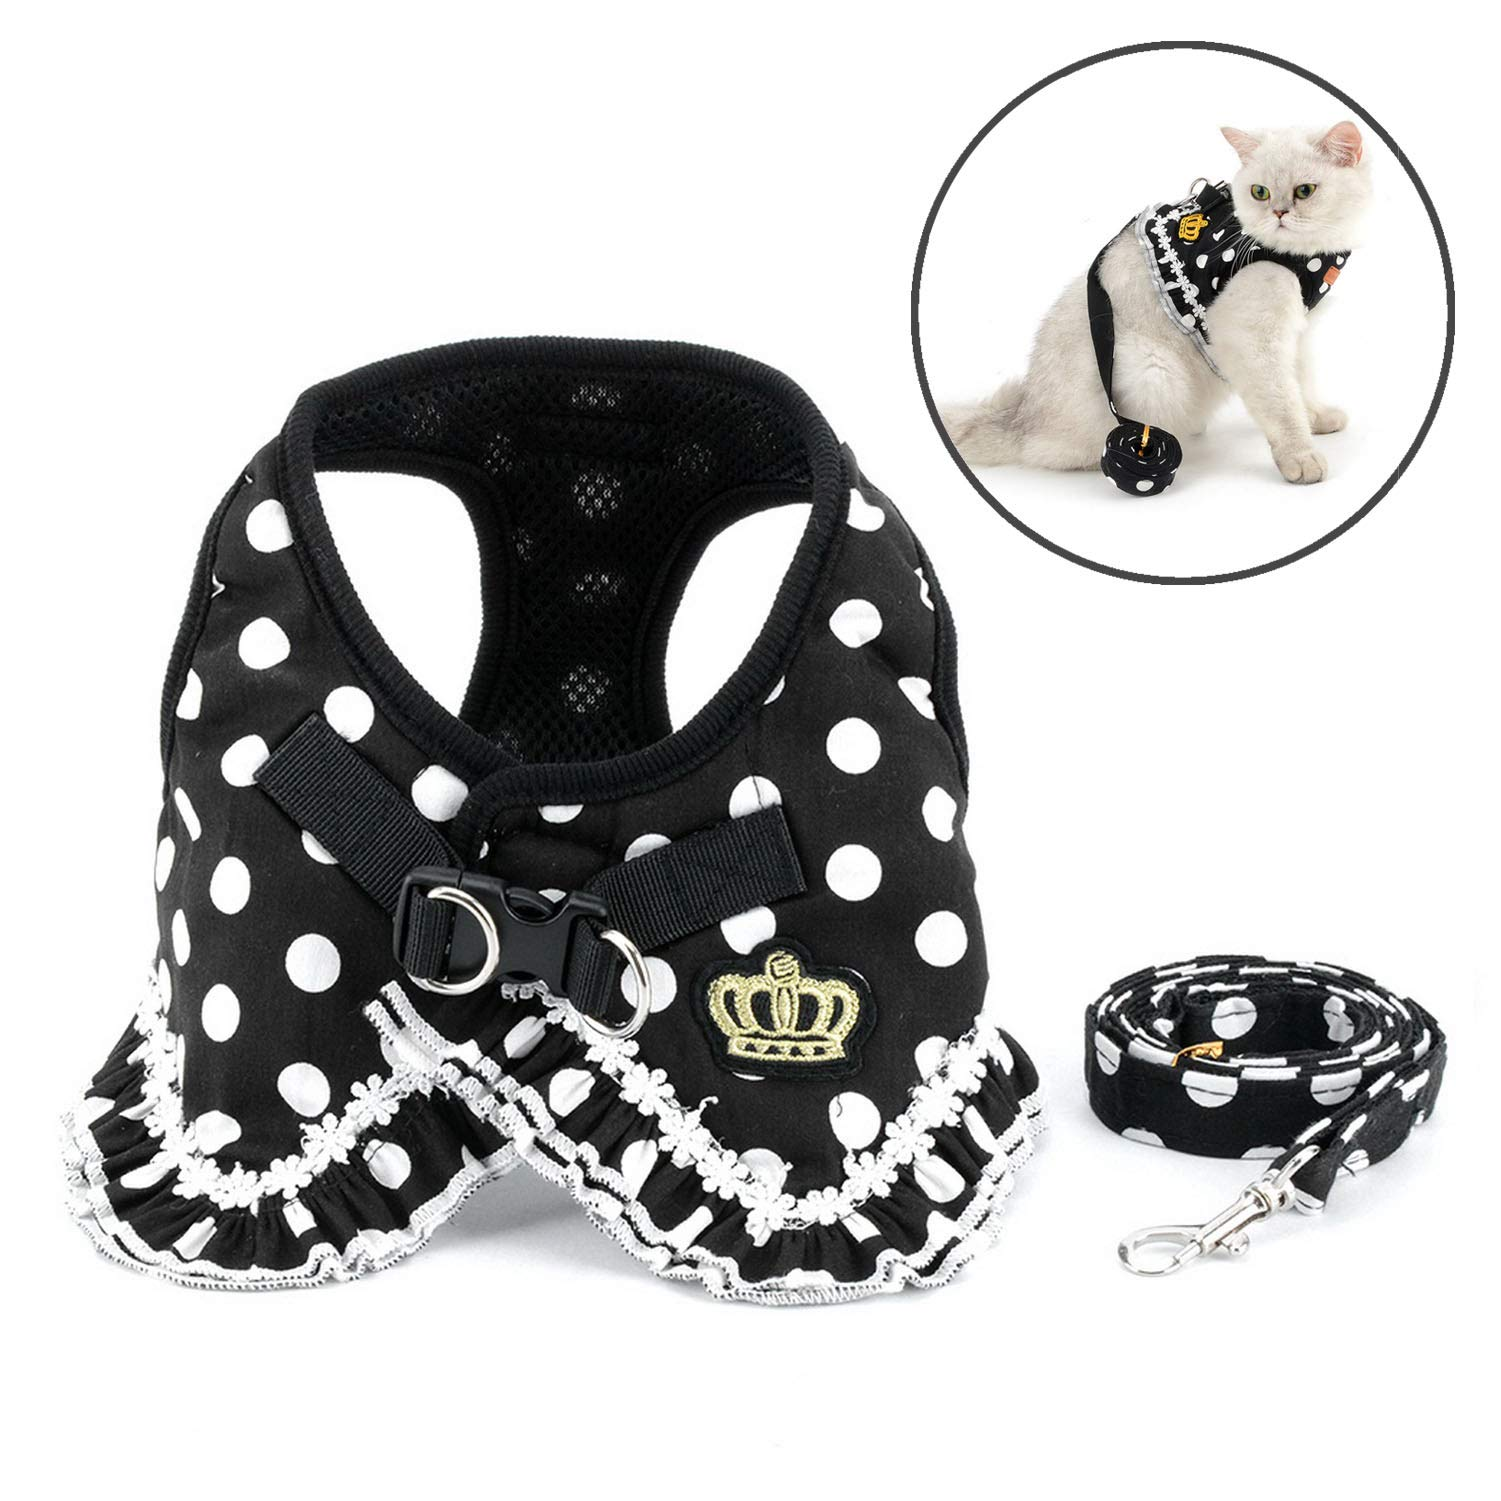 Zunea Polka Dots Cat Harness and Leash Set Girl Kitten Crown Escape Proof No Pull Choke Vest Clothes for Walking, Step in Soft Mesh Padded Puppy Harness for Small Dog Black S